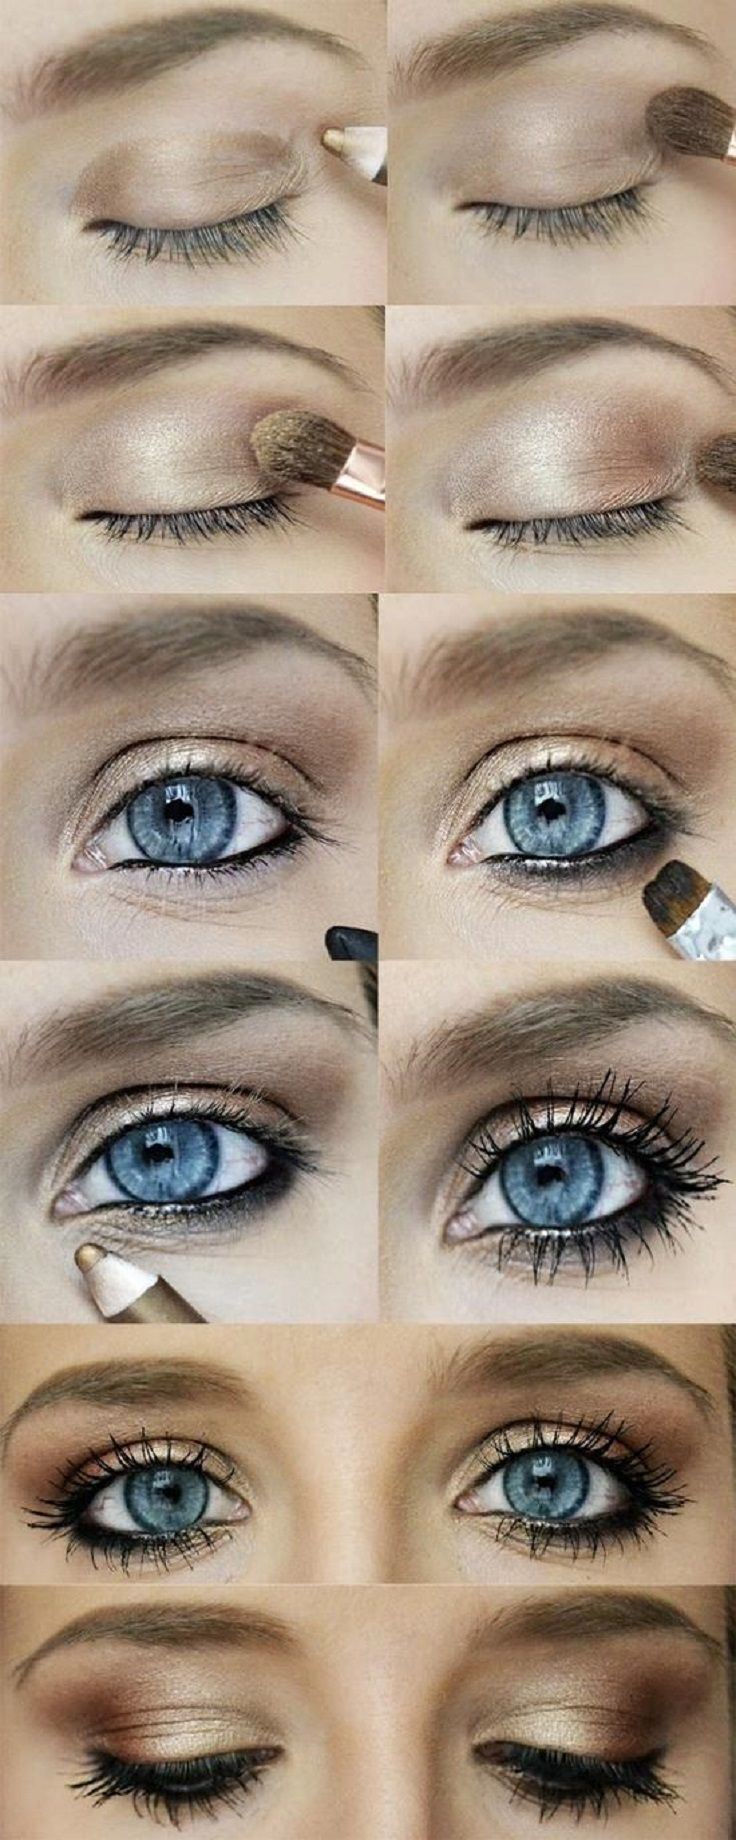 best makeuphairbeautifuluc images on pinterest cute